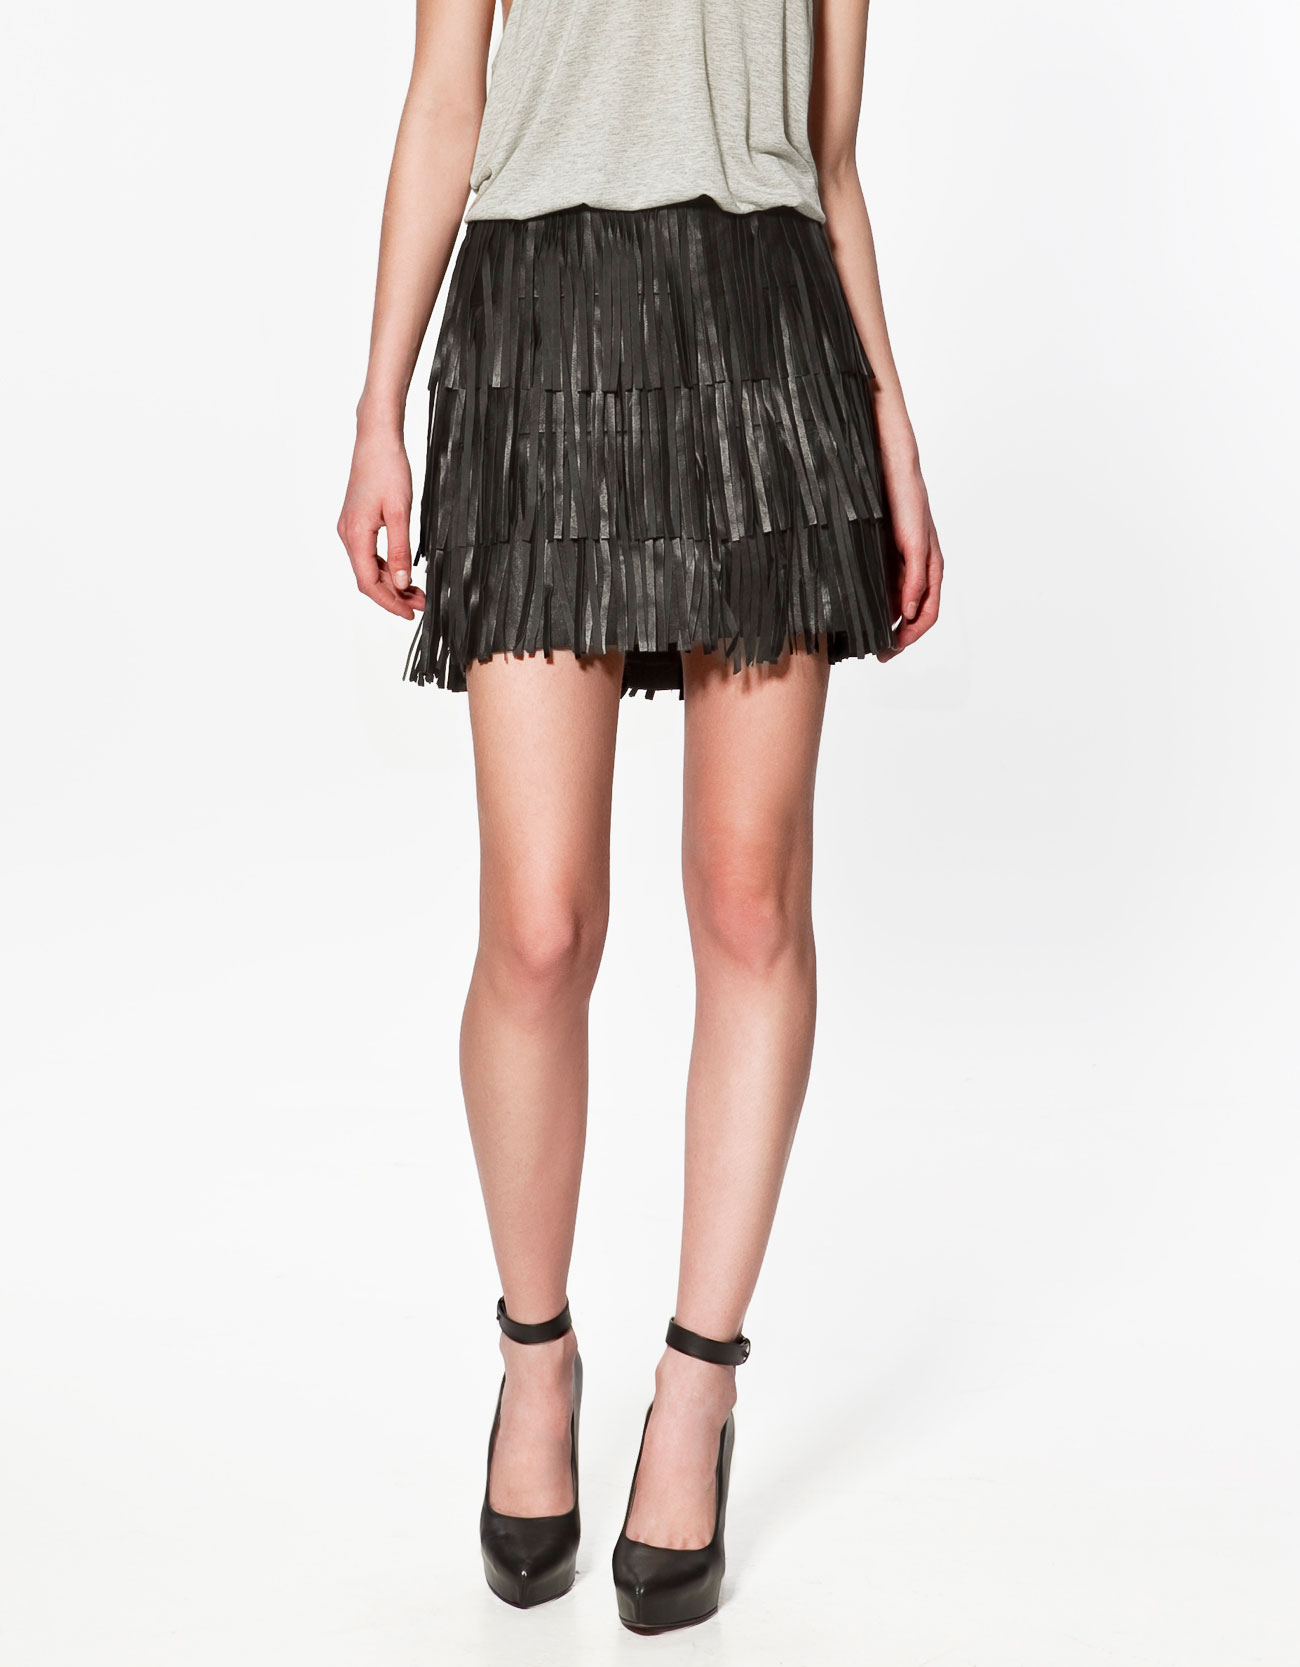 Zara Leather Fringed Skirt in Black | Lyst